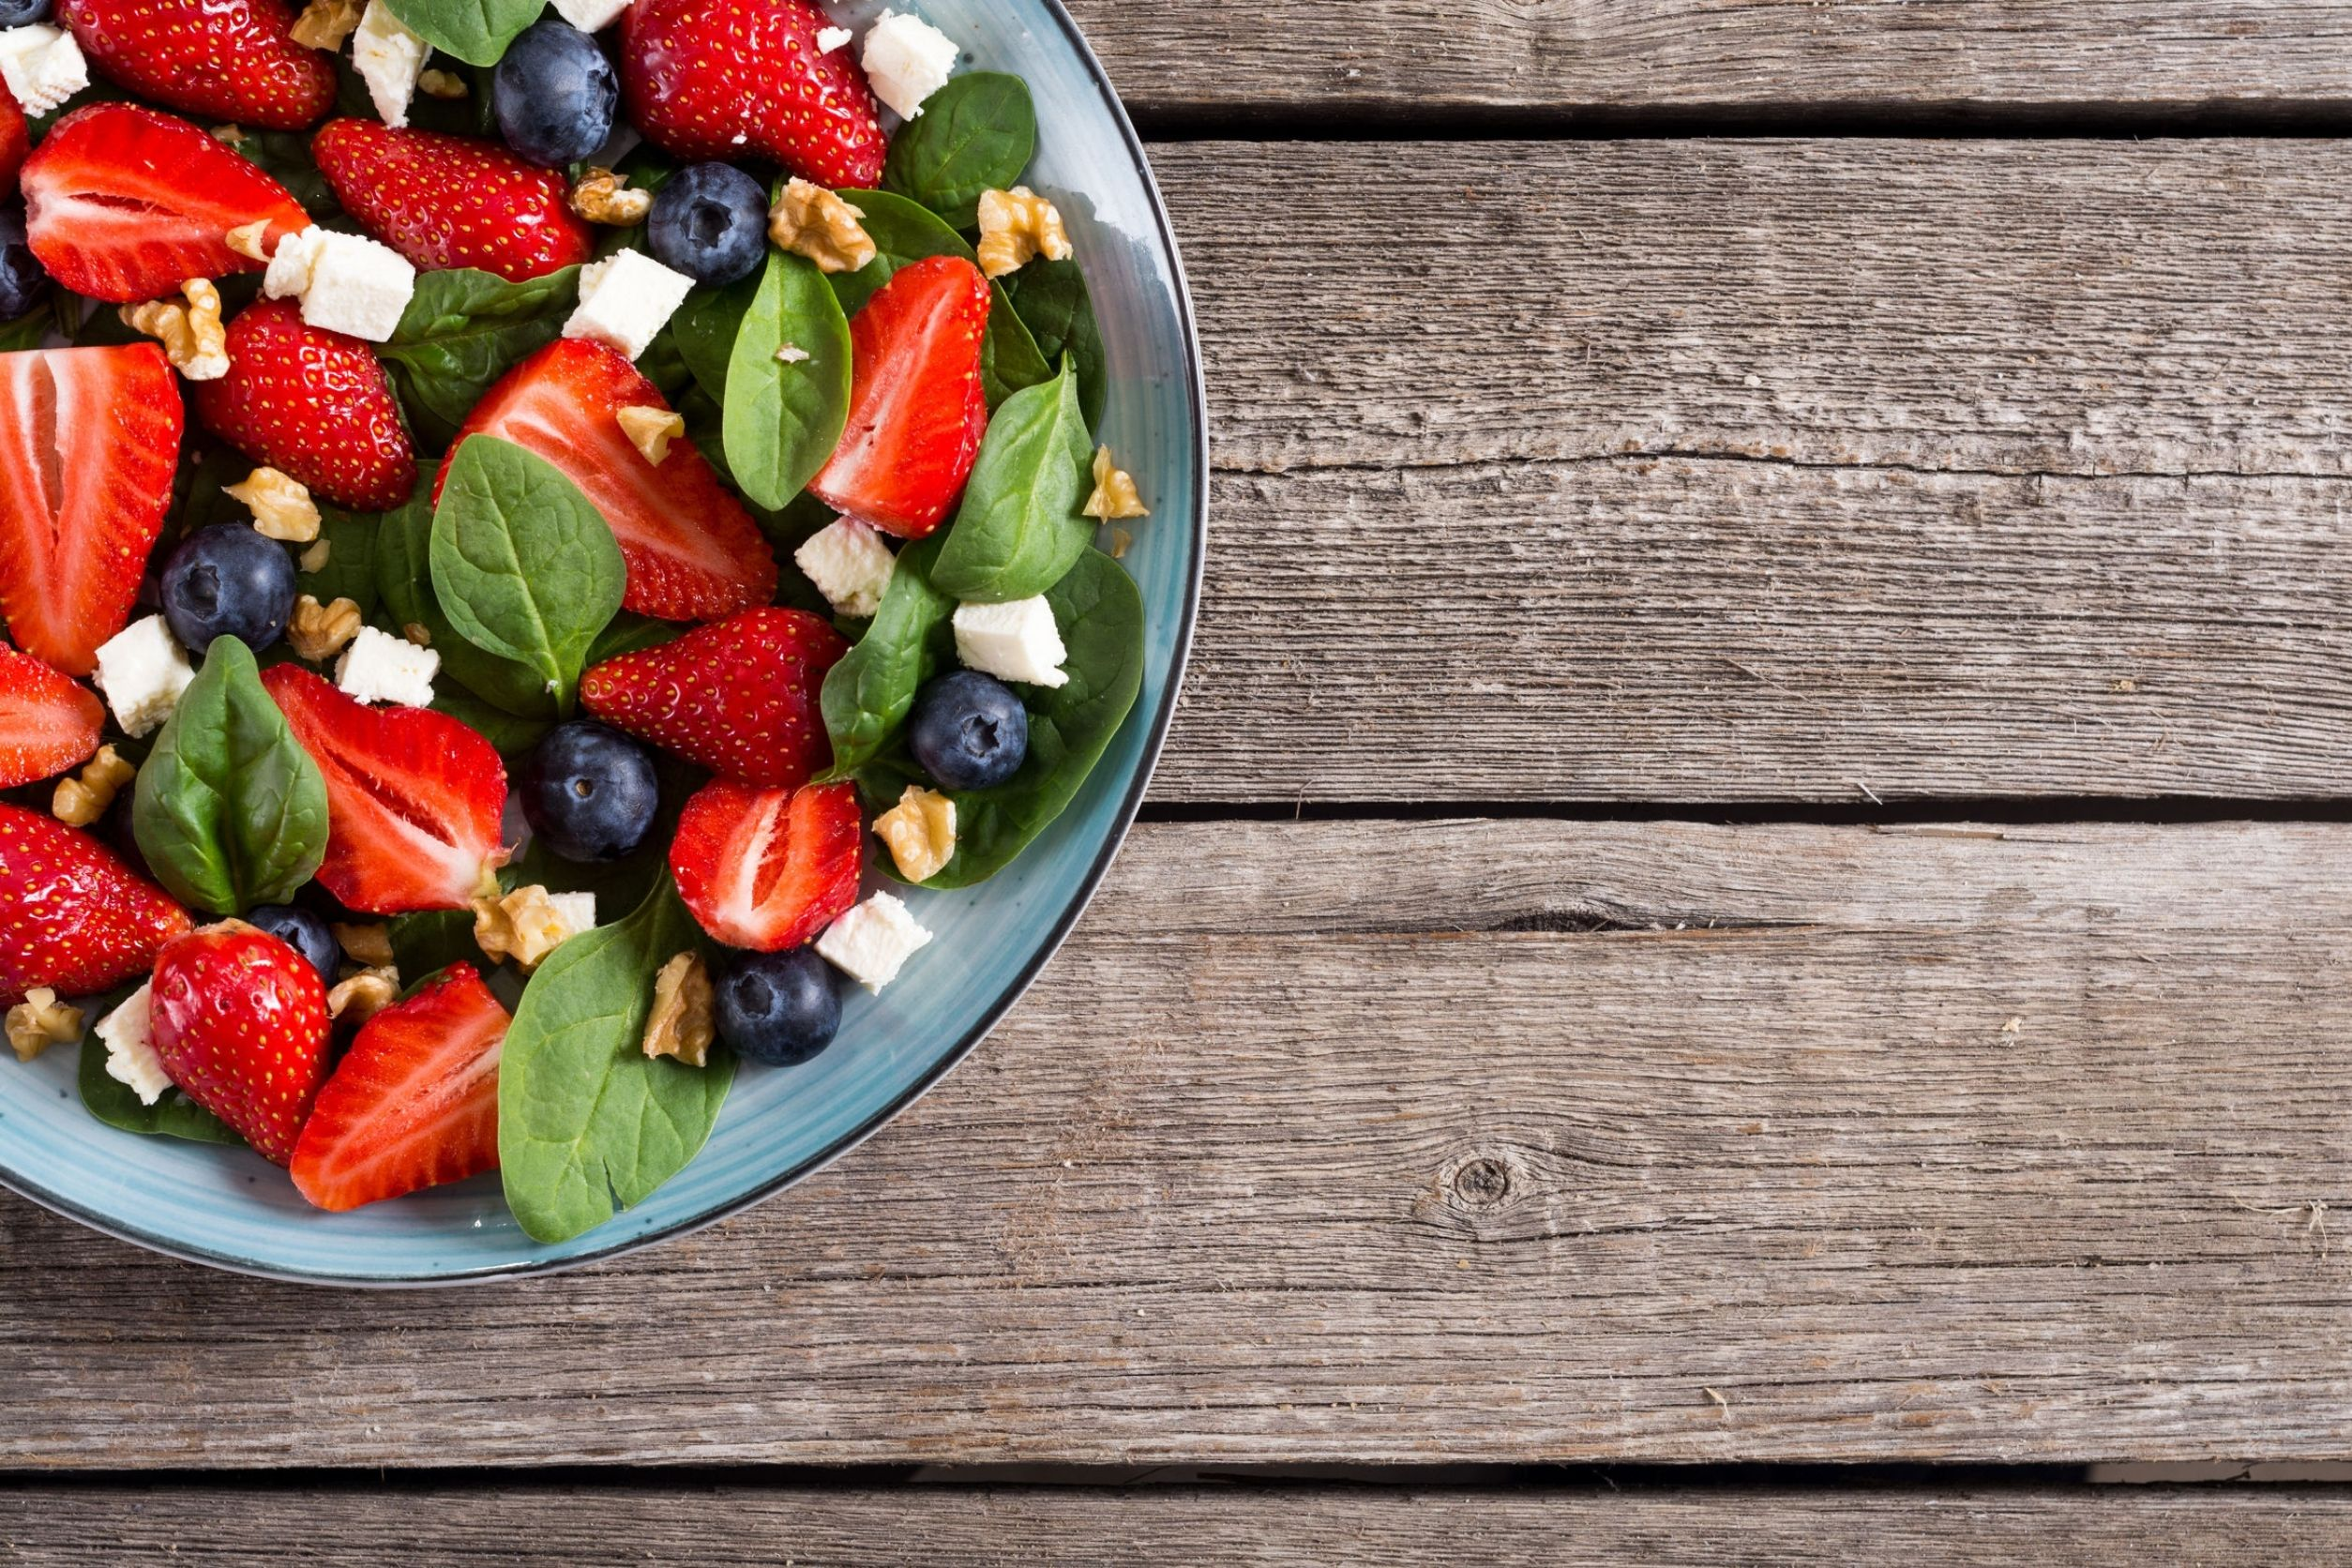 Berries and spinach salad is an excellent example of foods that help with anxiety